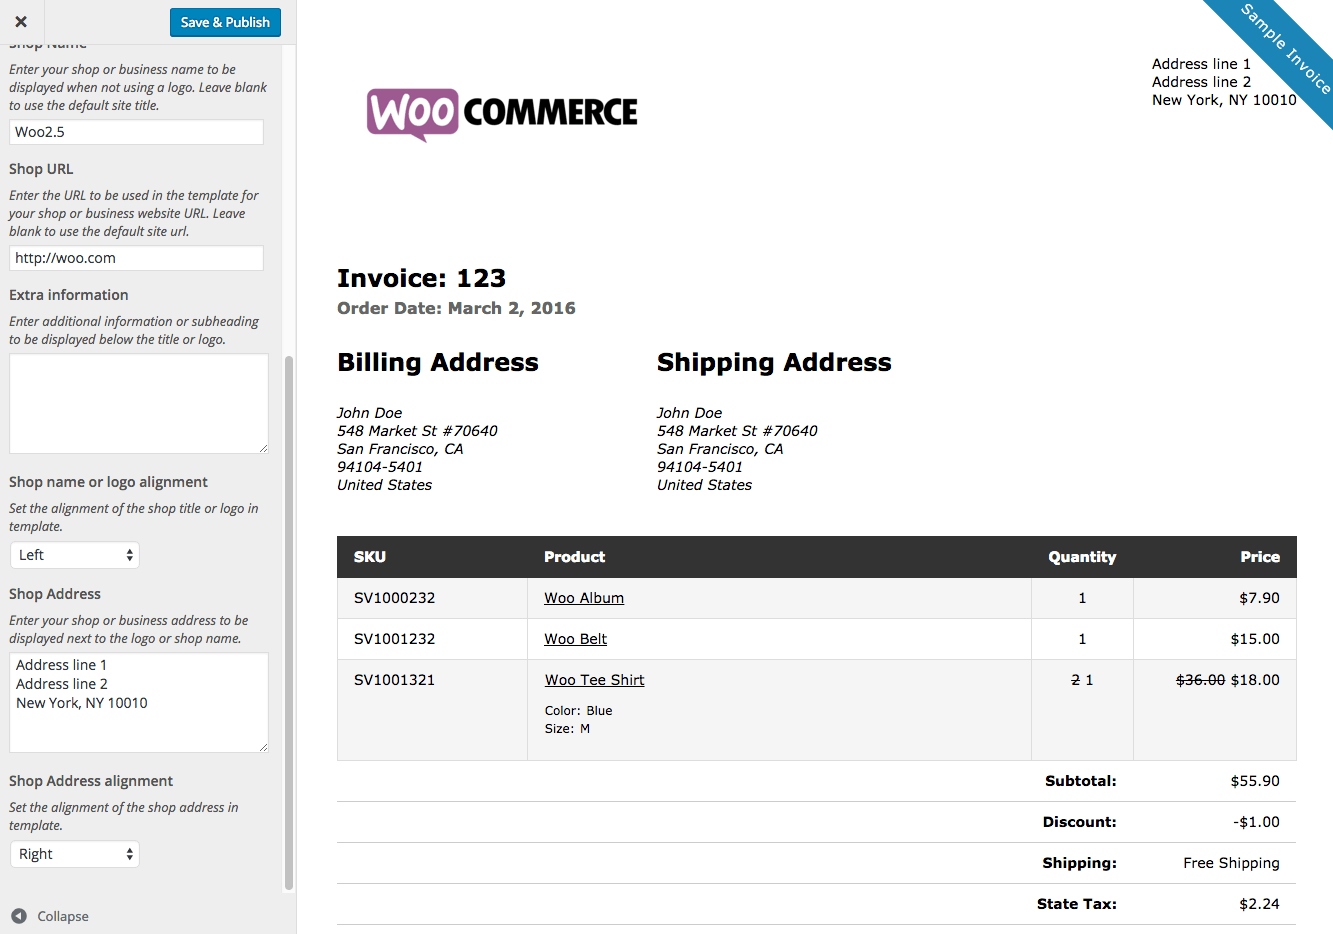 Centralasianshepherdus  Ravishing Print Invoices Amp Packing Lists  Woocommerce With Extraordinary Woocommerce Print Invoices  Packing Lists Customizer With Adorable Letter For Invoice Payment Also Invoice Online Free Generator In Addition Invoice Forms Templates Free And What Does Proforma Mean On An Invoice As Well As Invoice Template Email Additionally Invoicing Management System From Woocommercecom With Centralasianshepherdus  Extraordinary Print Invoices Amp Packing Lists  Woocommerce With Adorable Woocommerce Print Invoices  Packing Lists Customizer And Ravishing Letter For Invoice Payment Also Invoice Online Free Generator In Addition Invoice Forms Templates Free From Woocommercecom